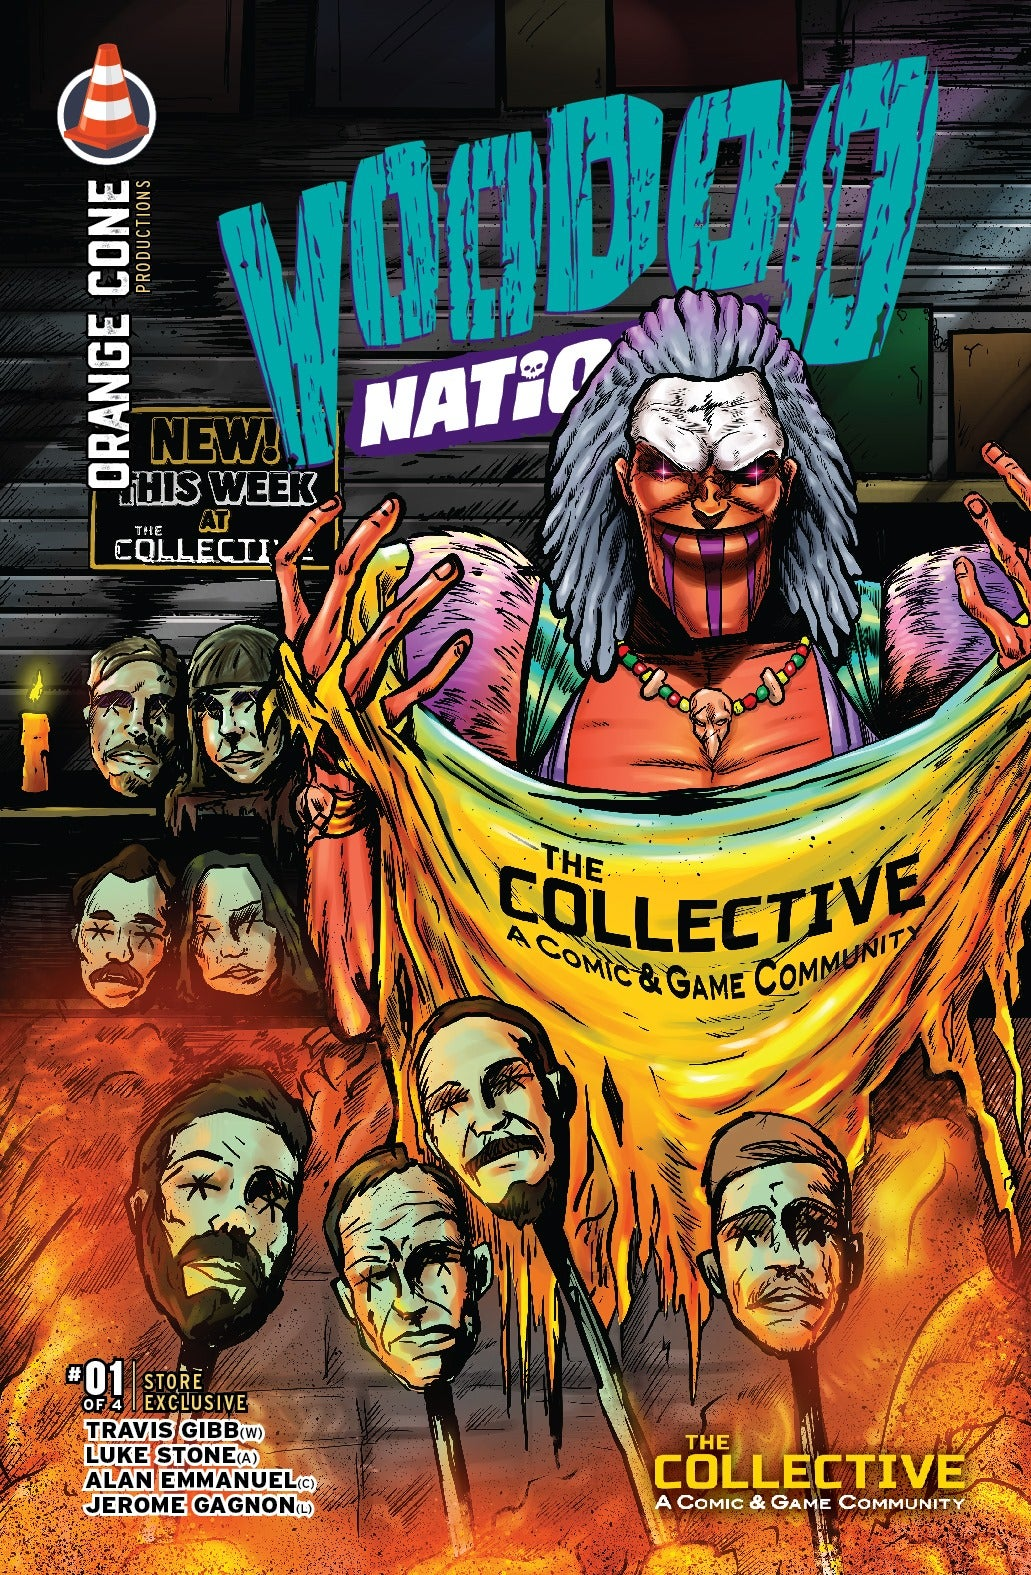 Image of VooDoo Nations #1 Collective Exclusive Cover